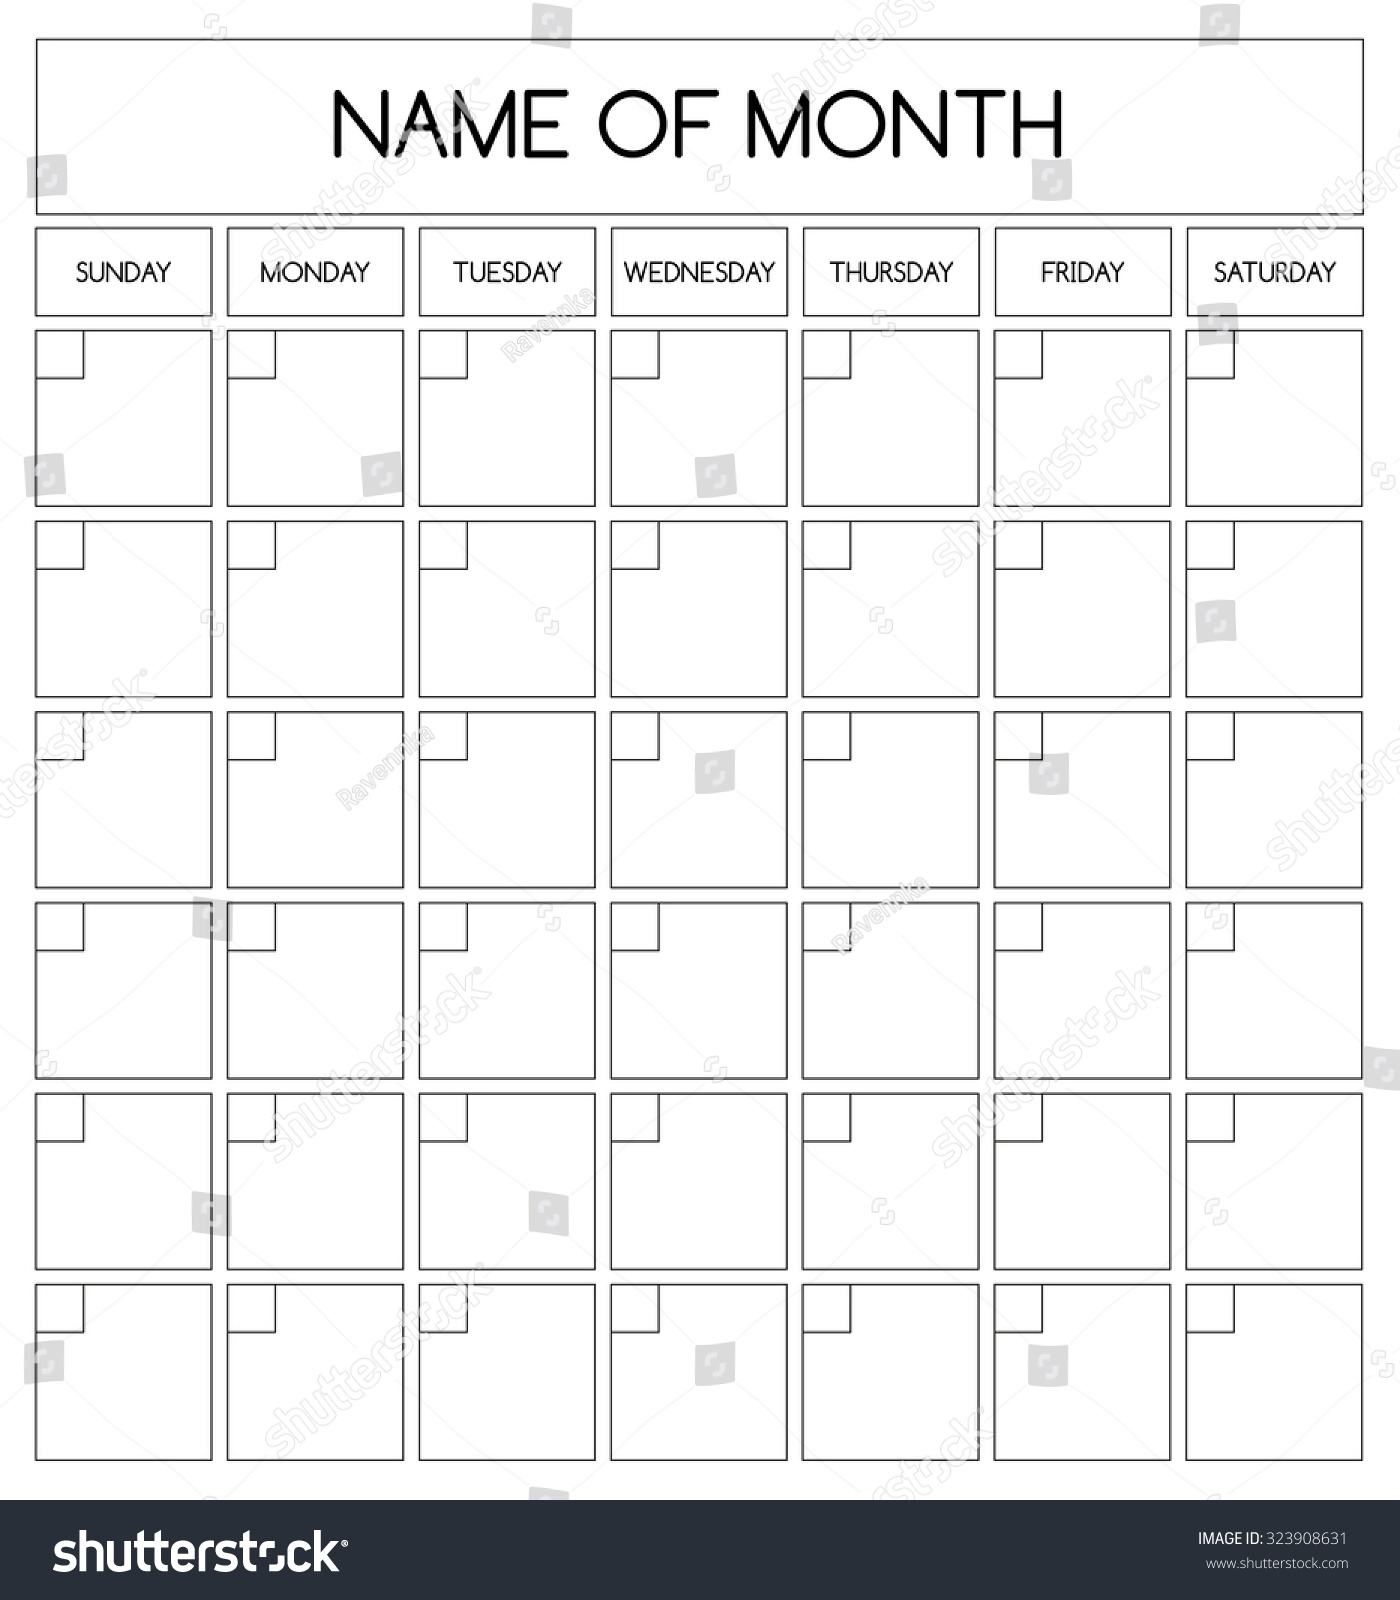 month by month planner